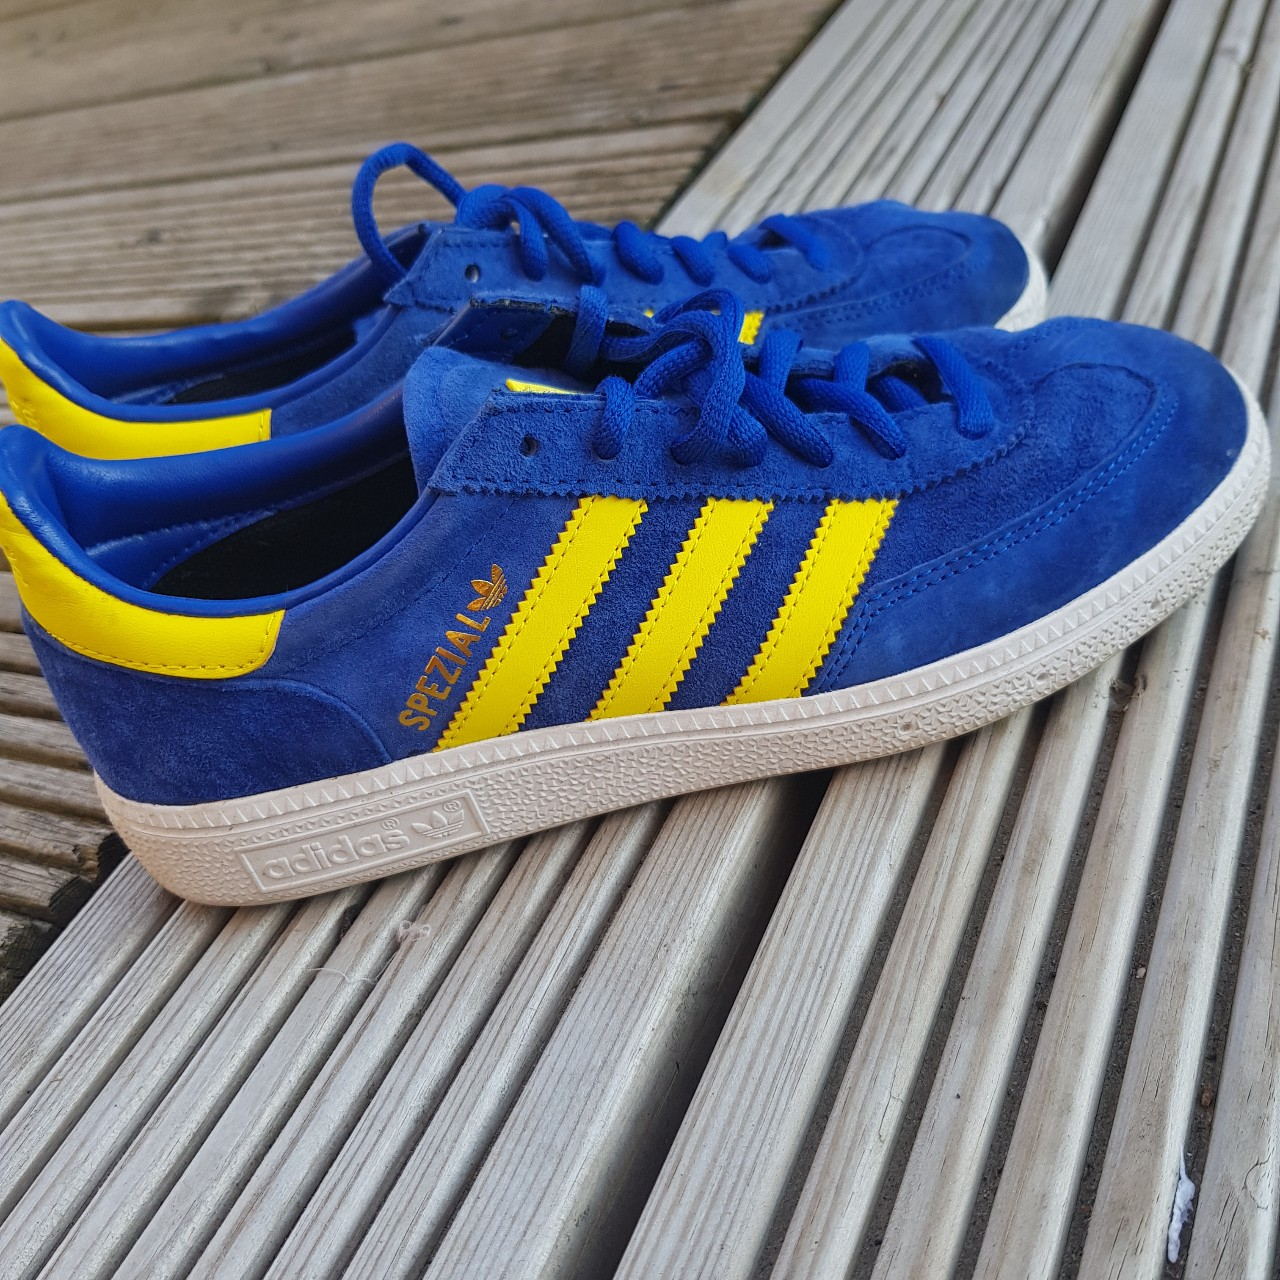 adidas spezial blue and yellow Online